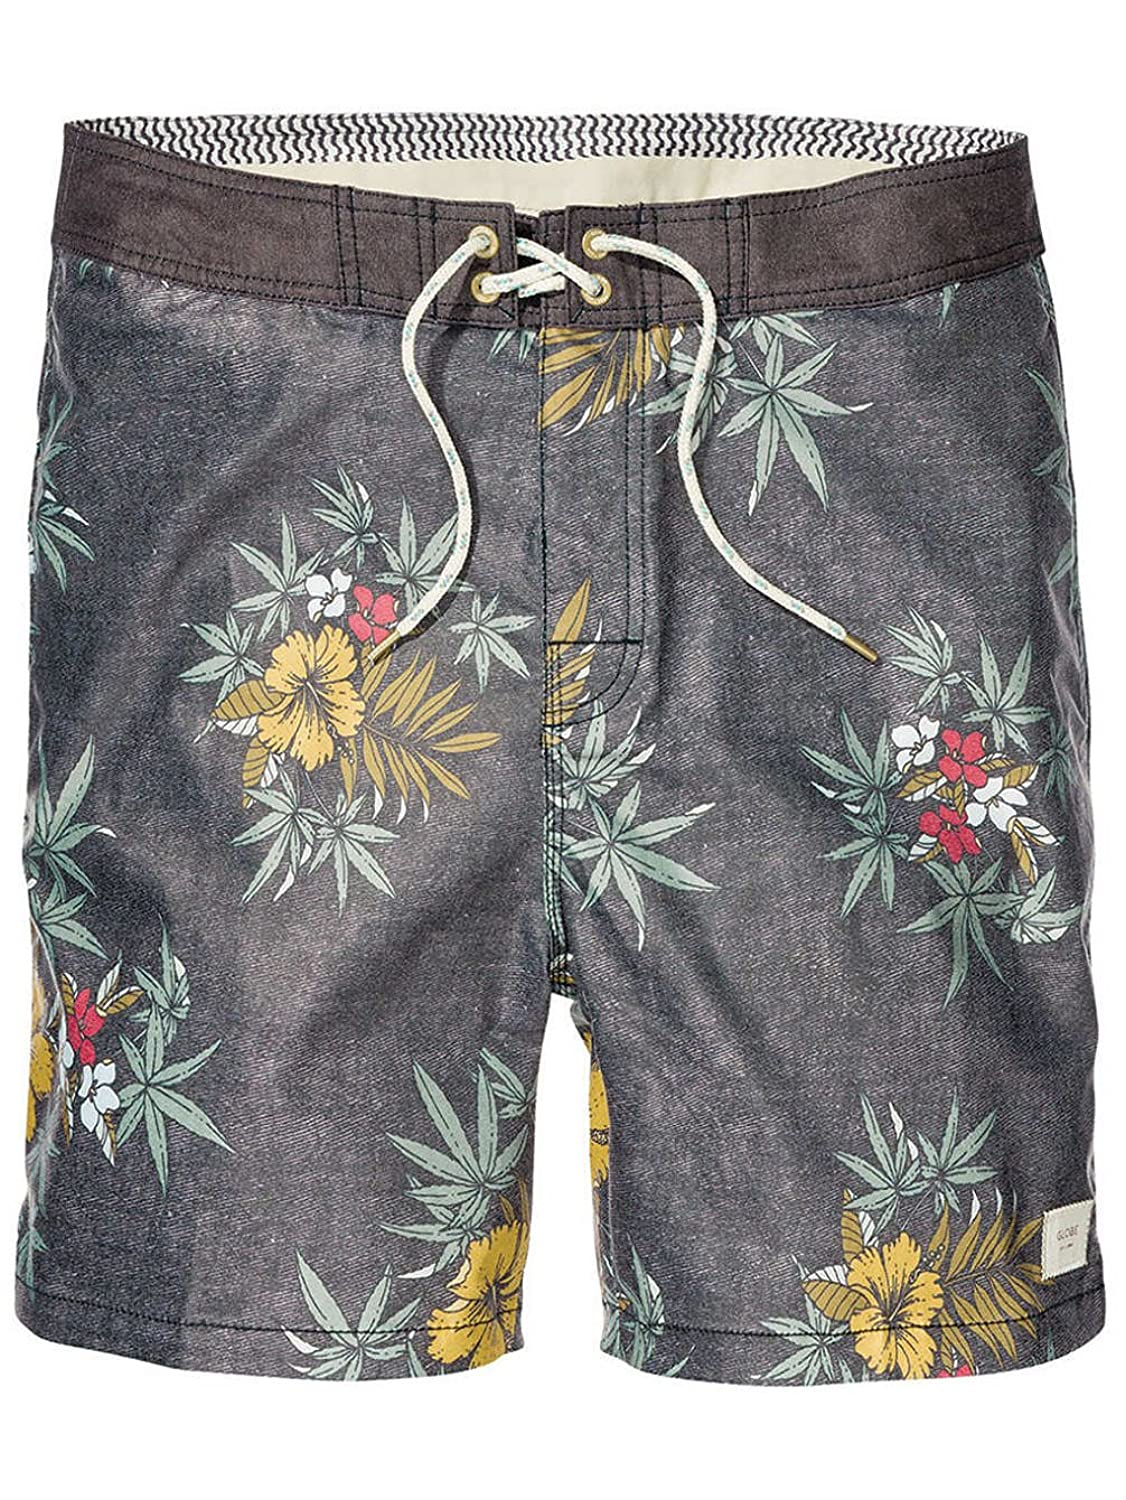 "Globe Mens Hibiscus 18"" Boardshorts - Floral Swimshorts in Black"